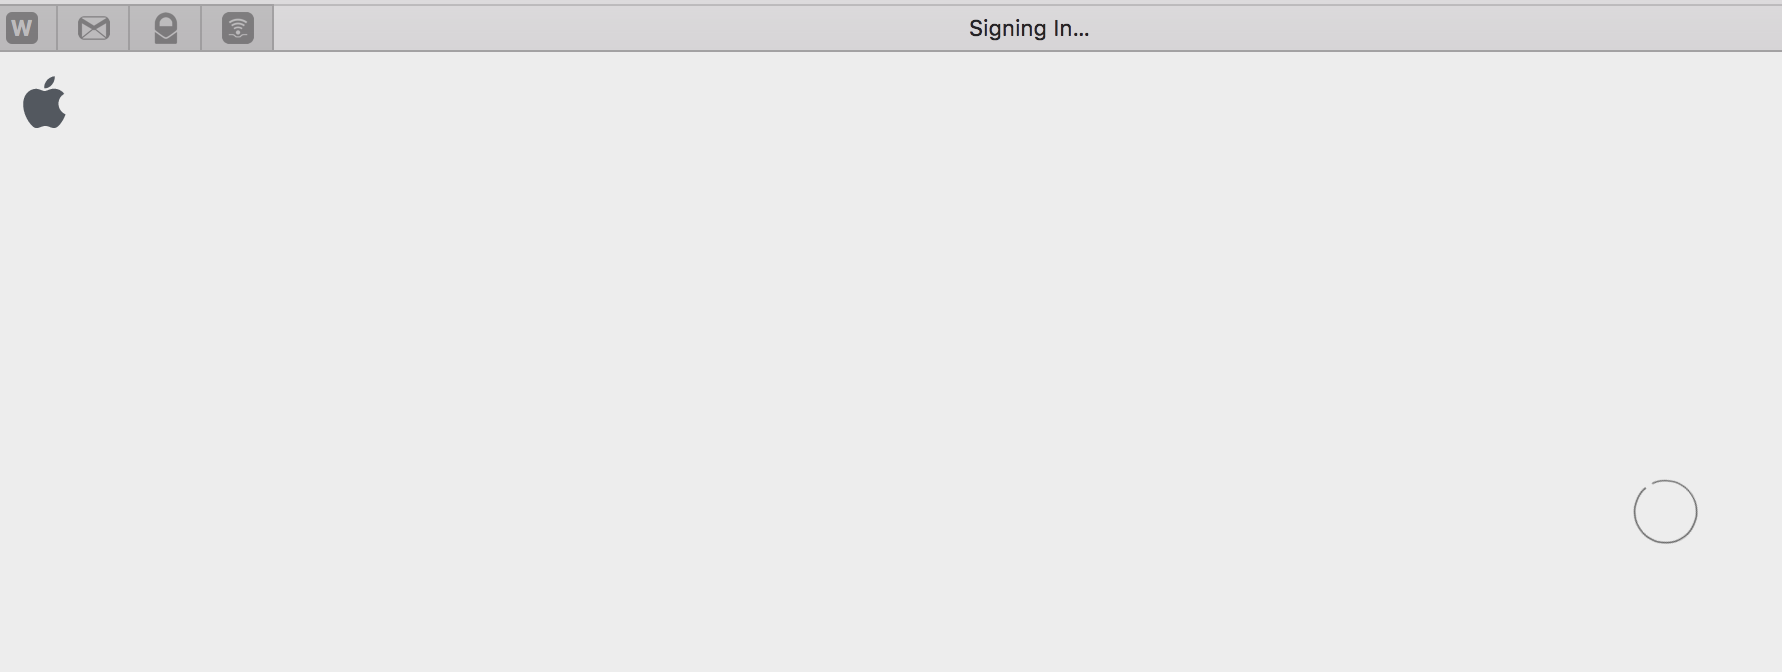 Icloud session expired keeps asking me to sign in again